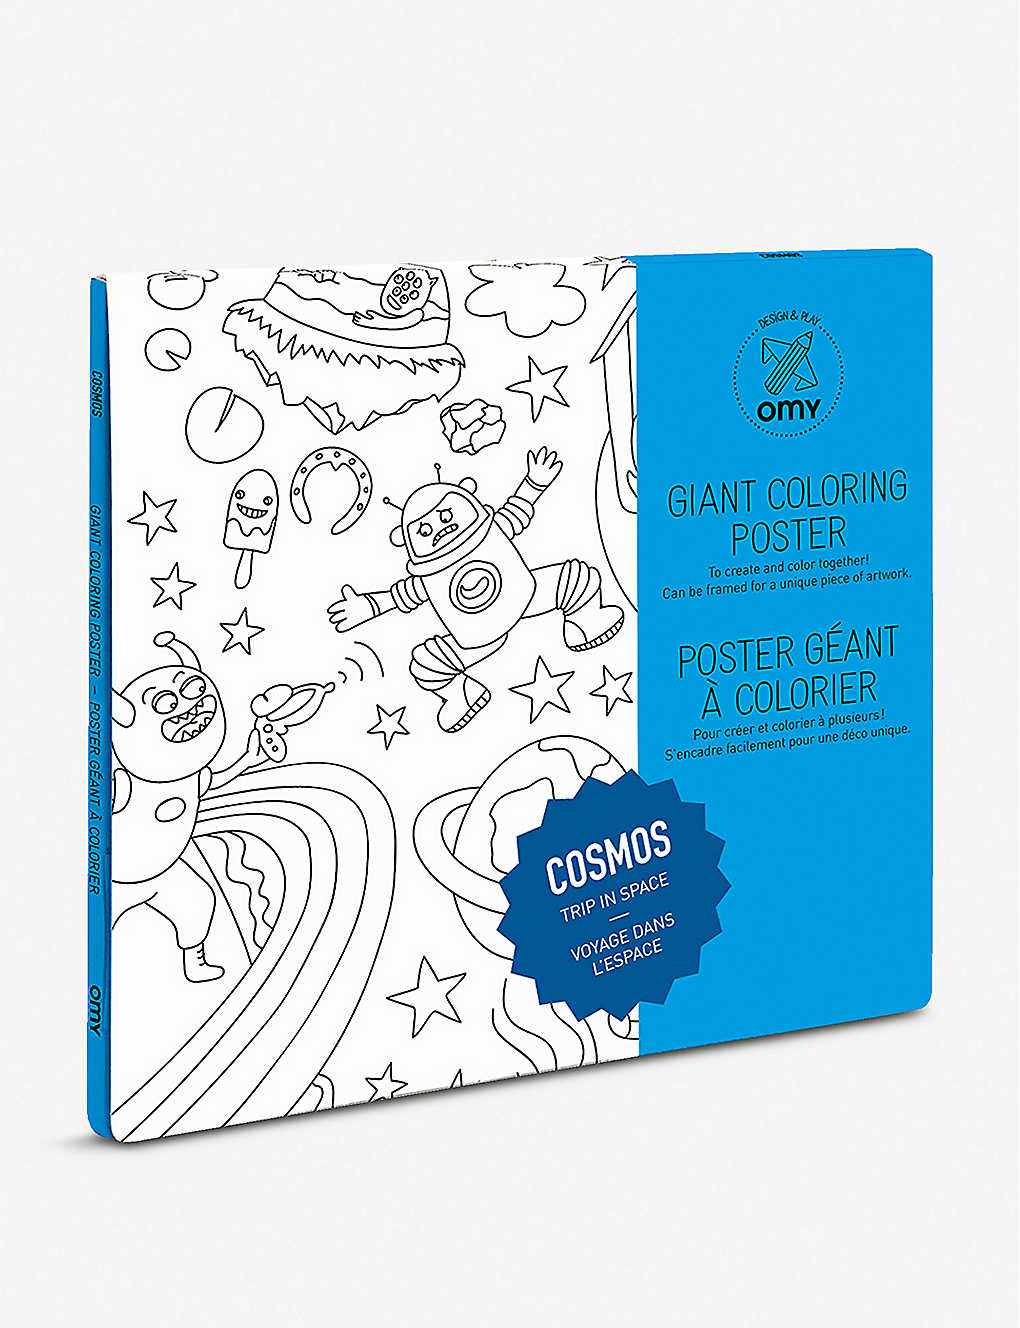 THE CONRAN SHOP: Omy Giant Cosmos recycled-paper colouring poster 70cm x 100cm